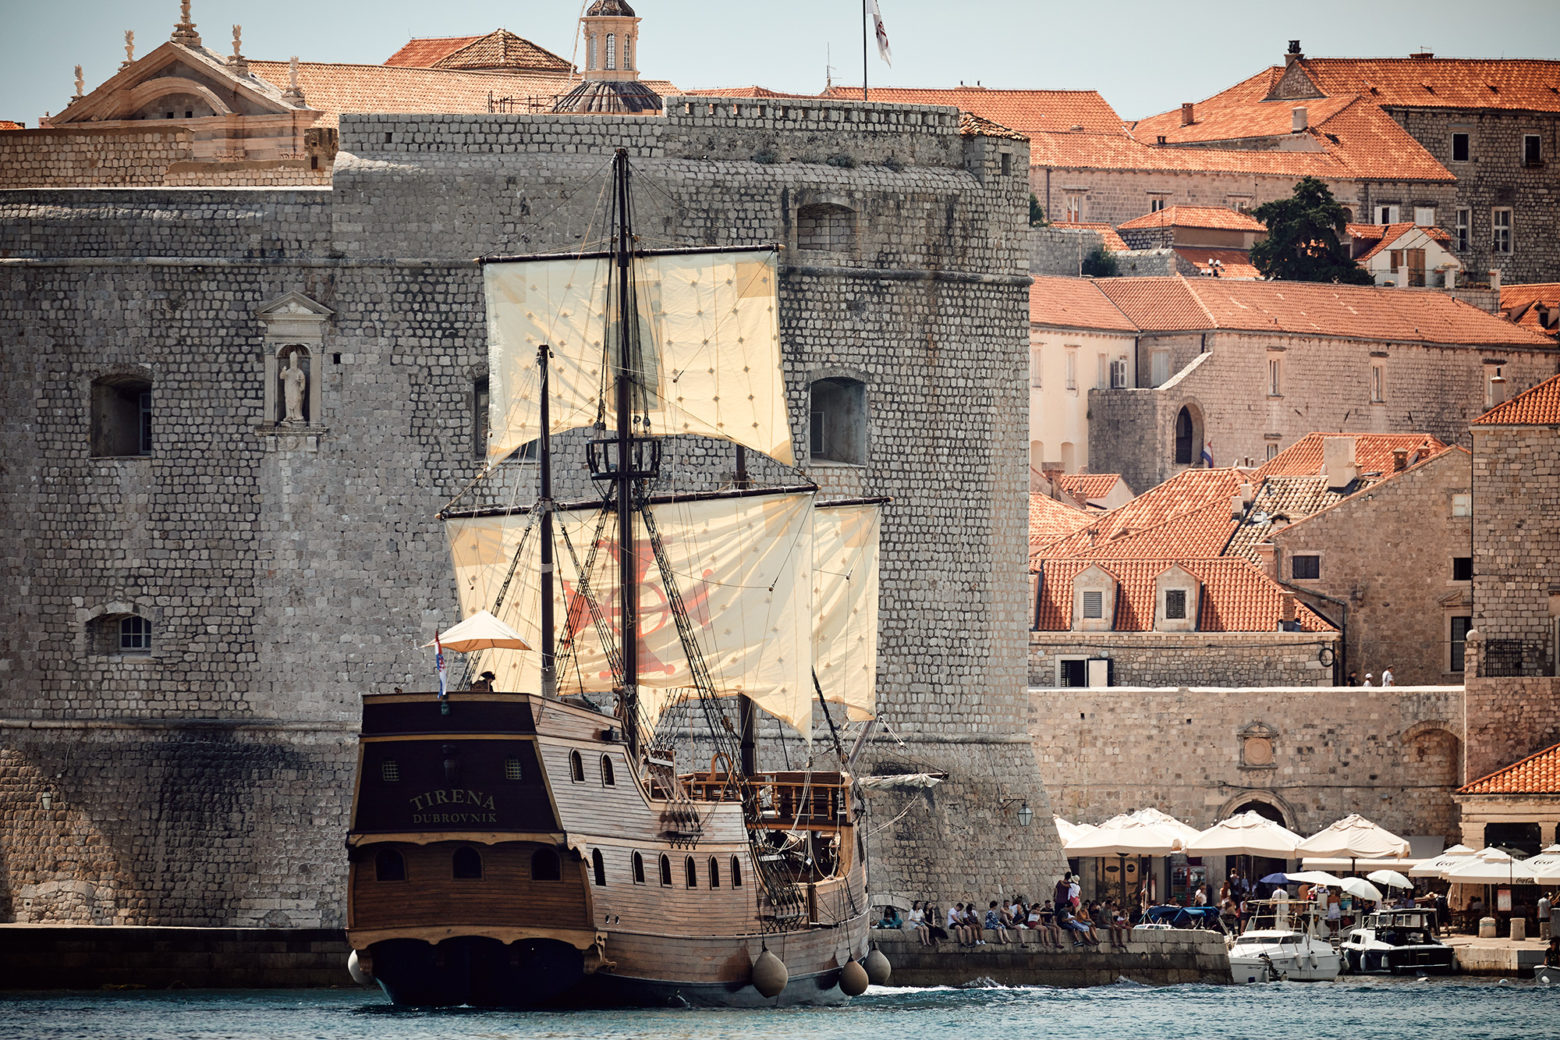 Going back in time...Dubrovnik